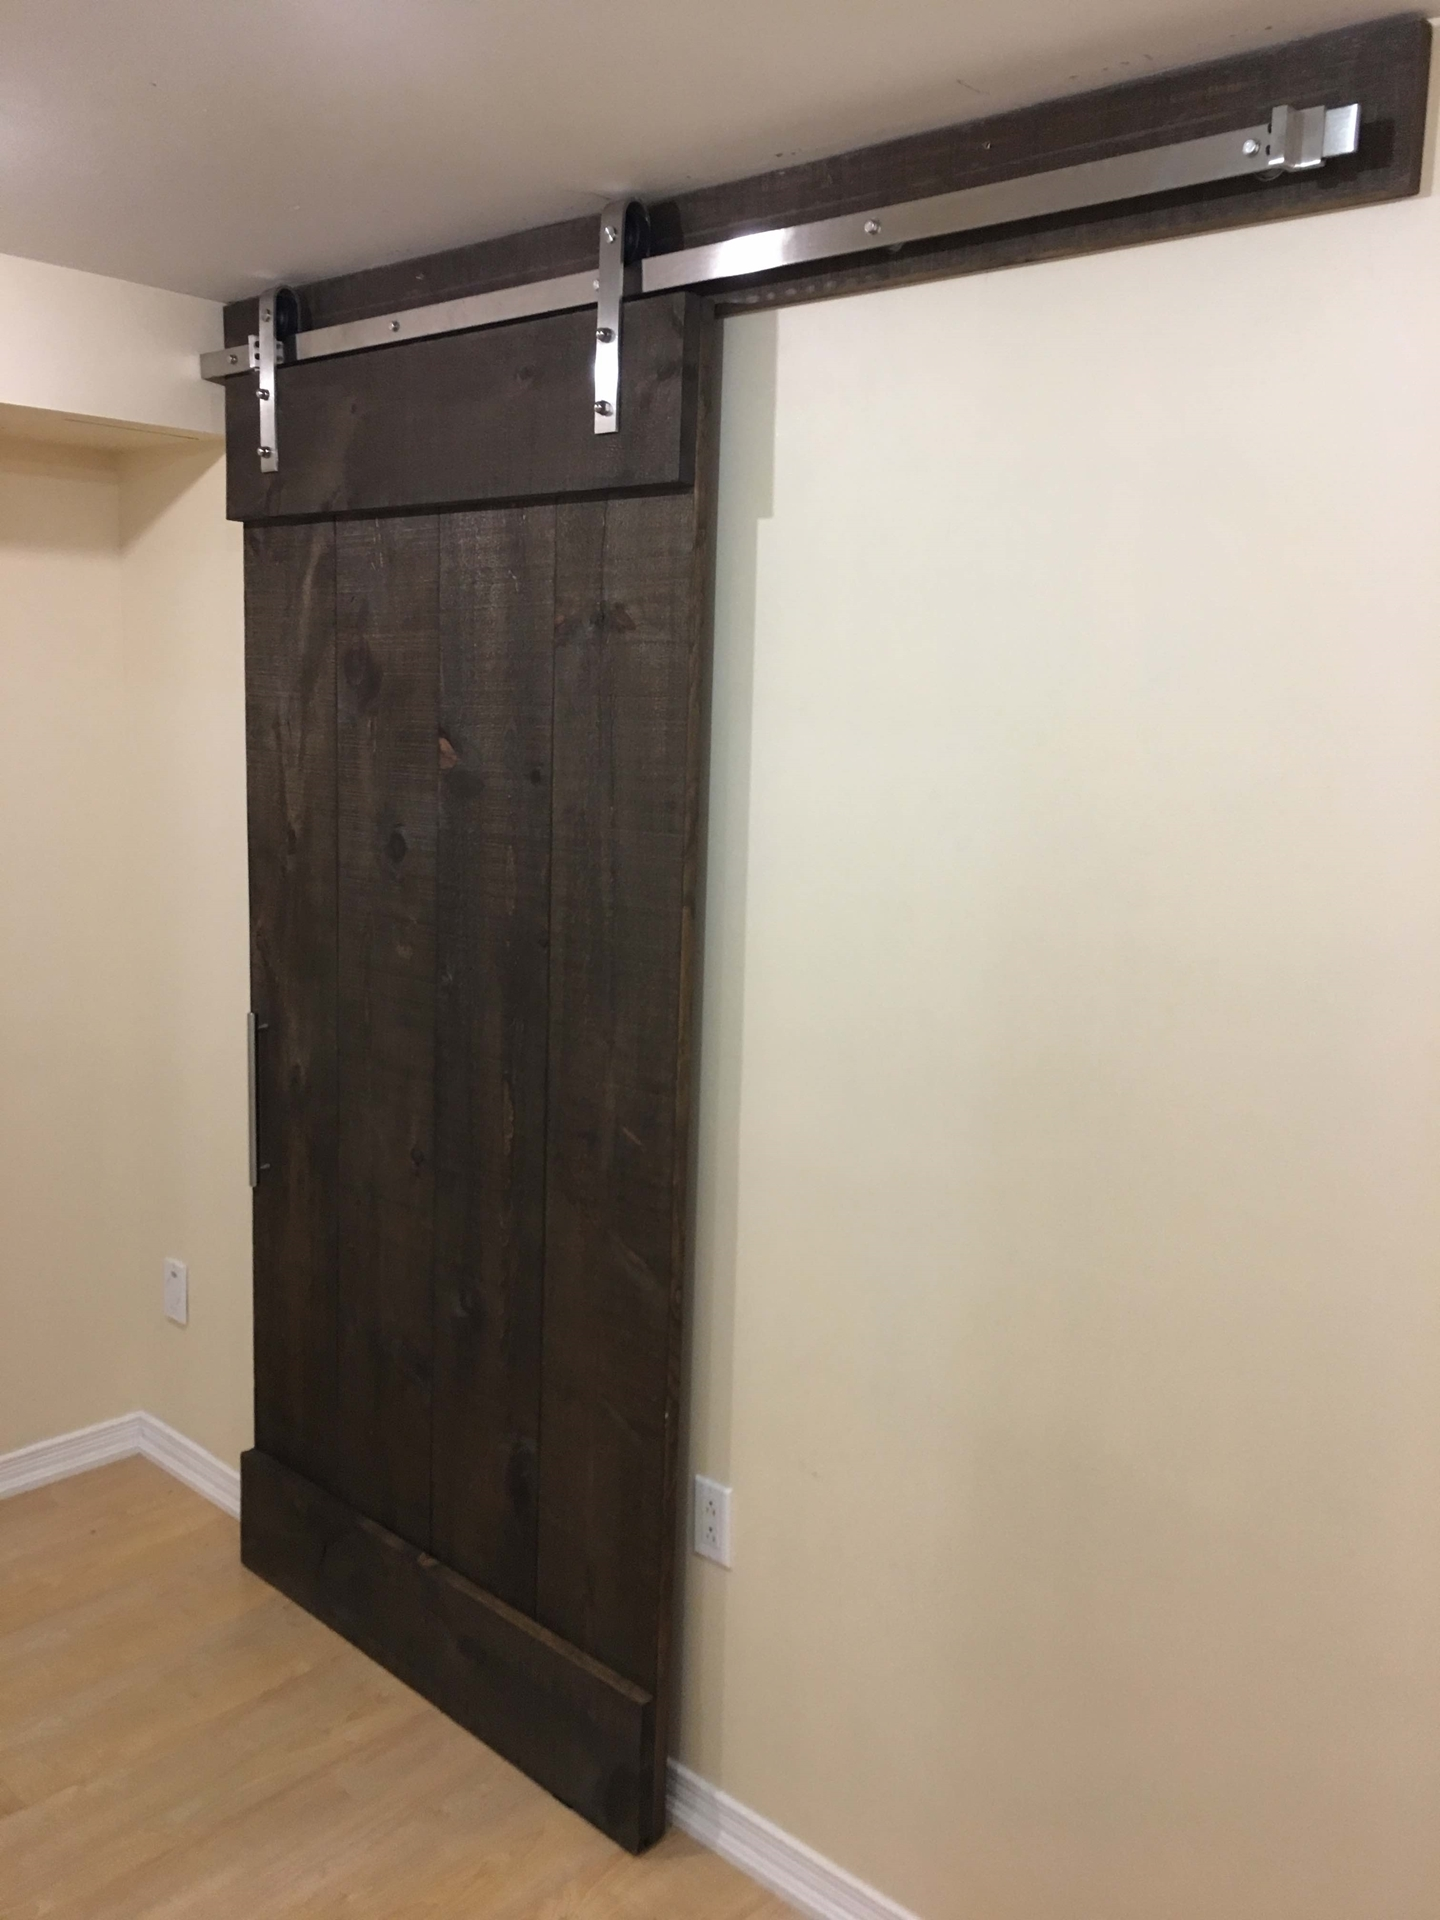 Stainless Steel Barn Door Hardware Kit Trending Home